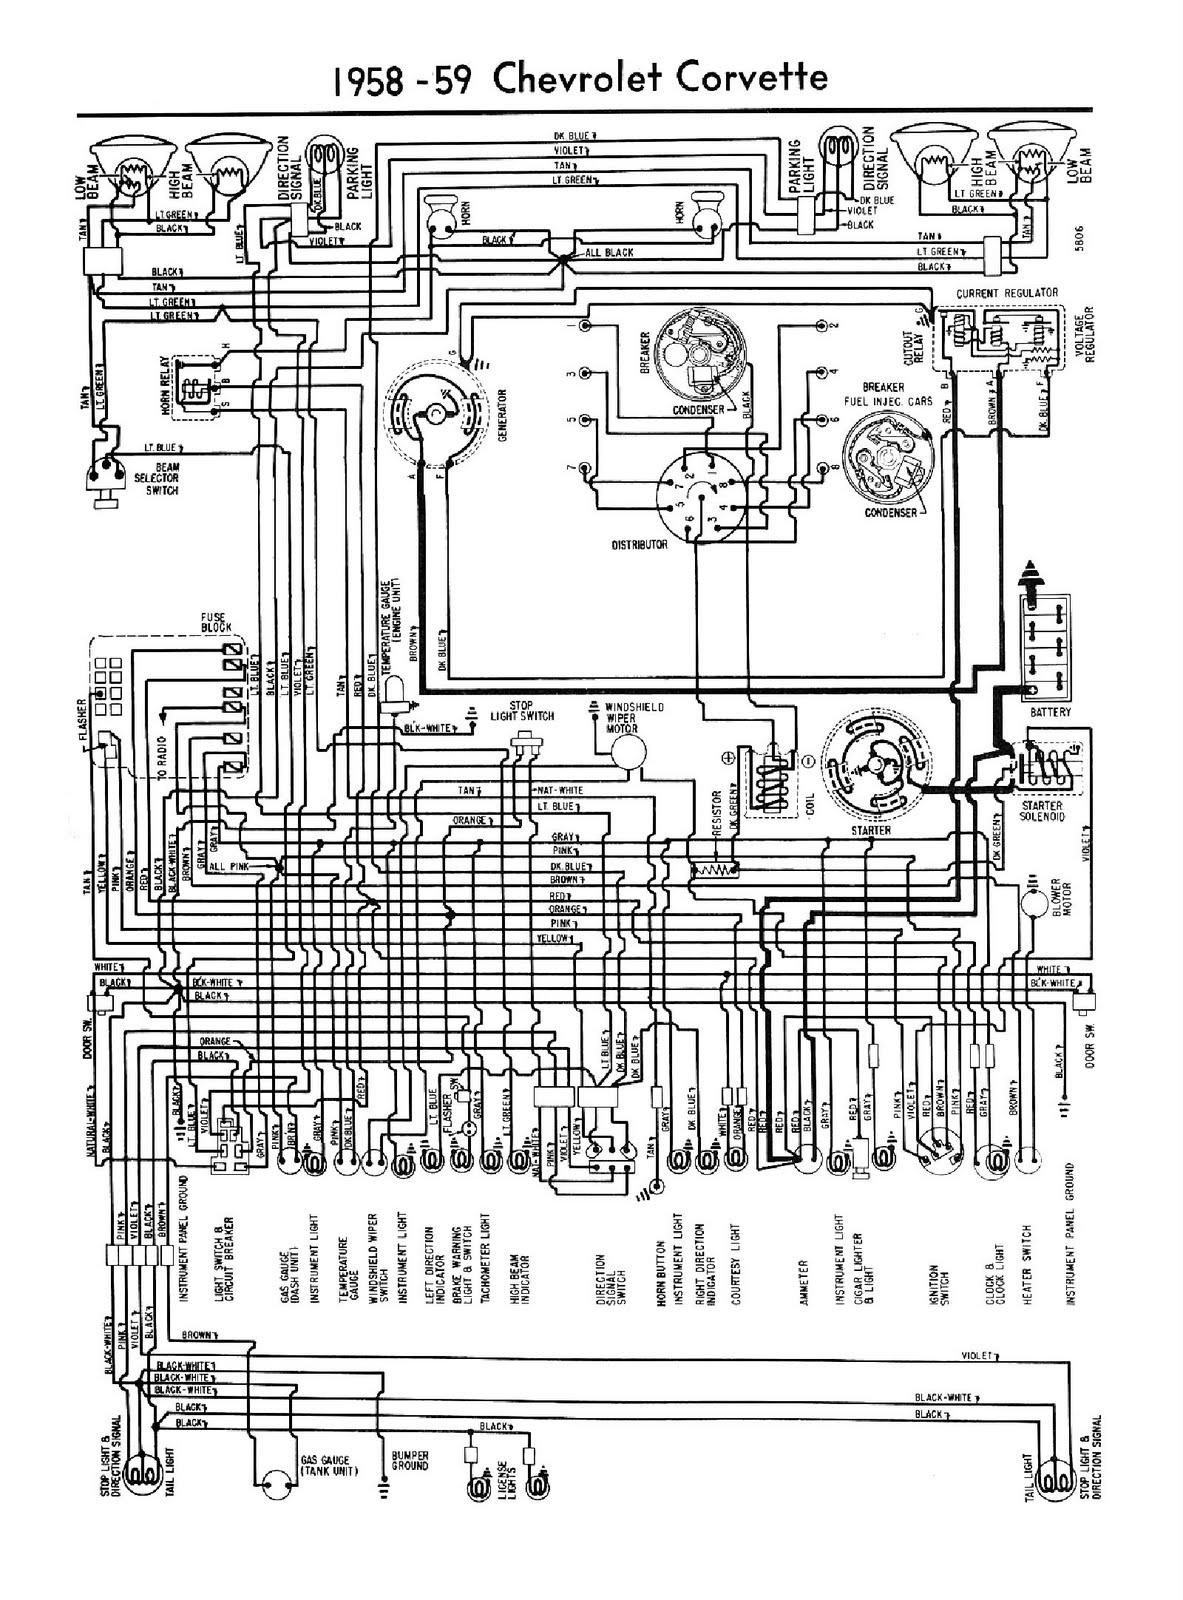 medium resolution of 1958 corvette instrument cluster wiring diagram wiring diagram g8 1999 corvette wiring diagram 1958 mercedes wiring